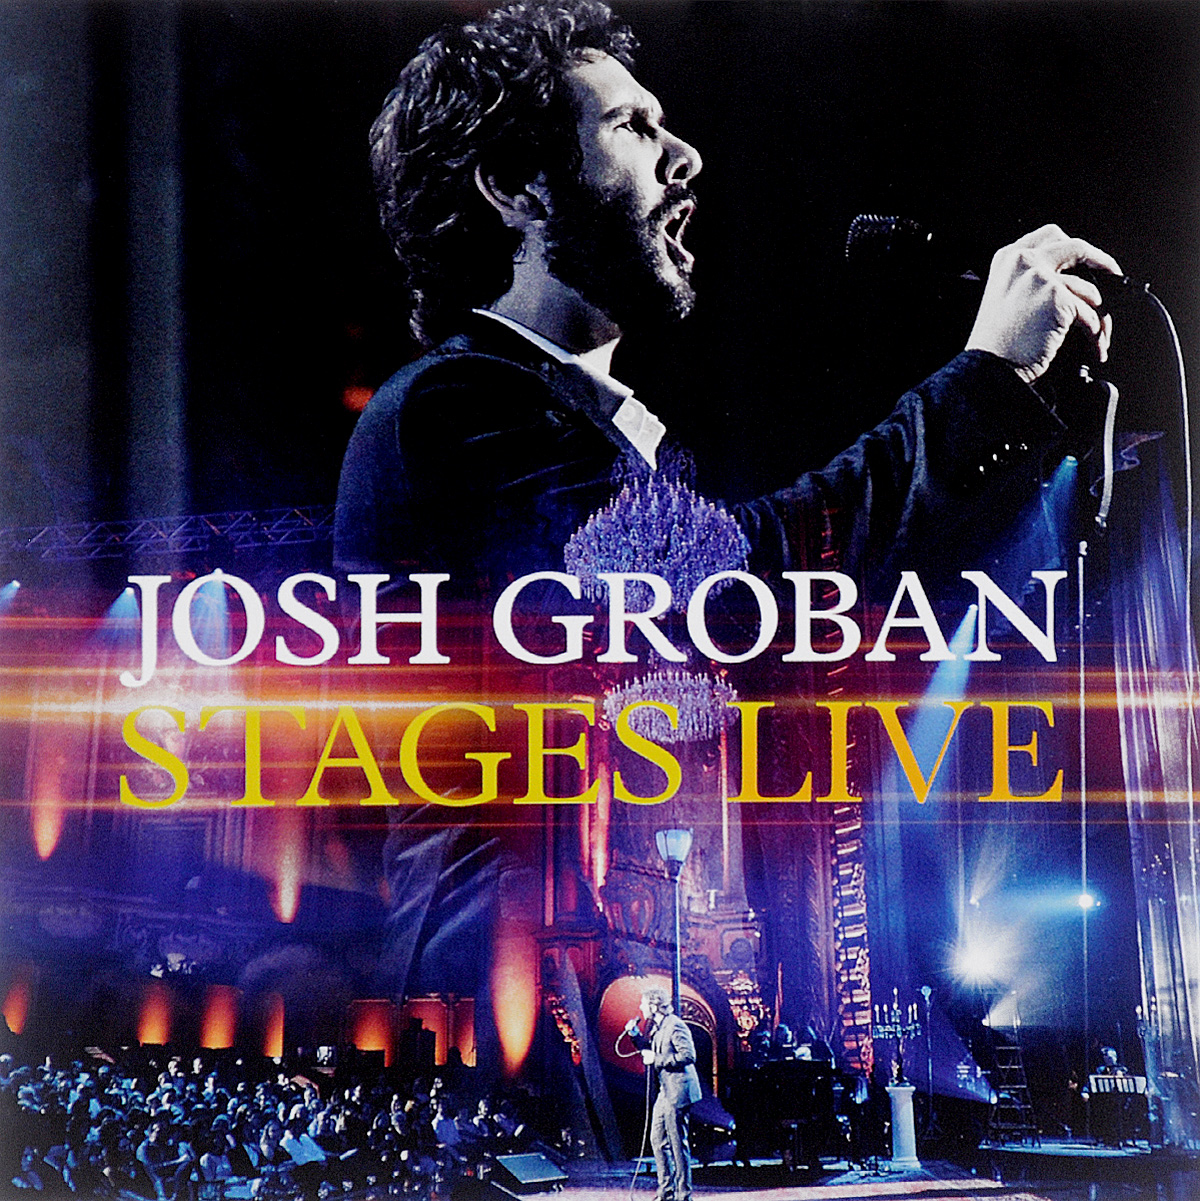 Джош Гробан Josh Groban. Stages Live (CD + DVD) dvd диск igor moisseiev ballet live in paris 1 dvd